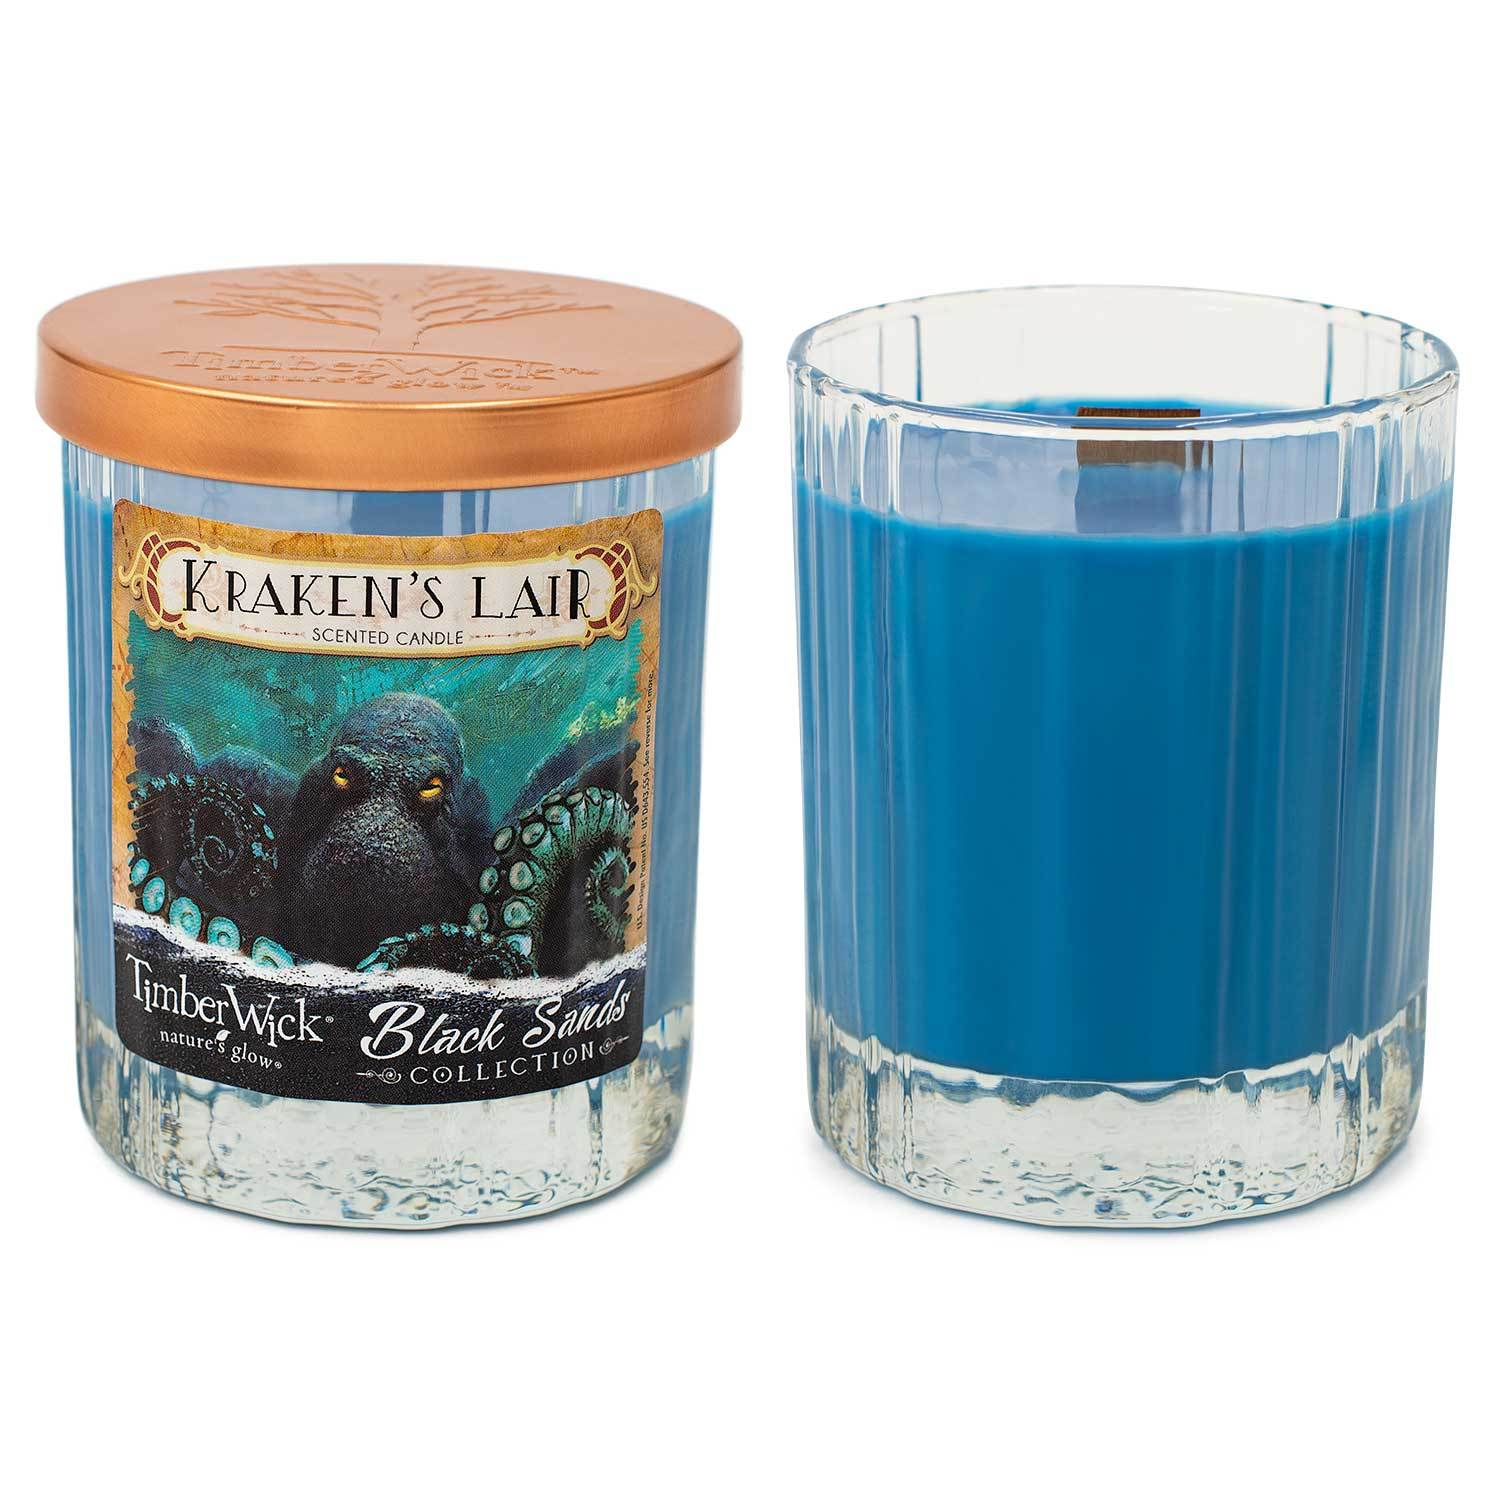 Timberwick Kraken's Lair Scented Candle